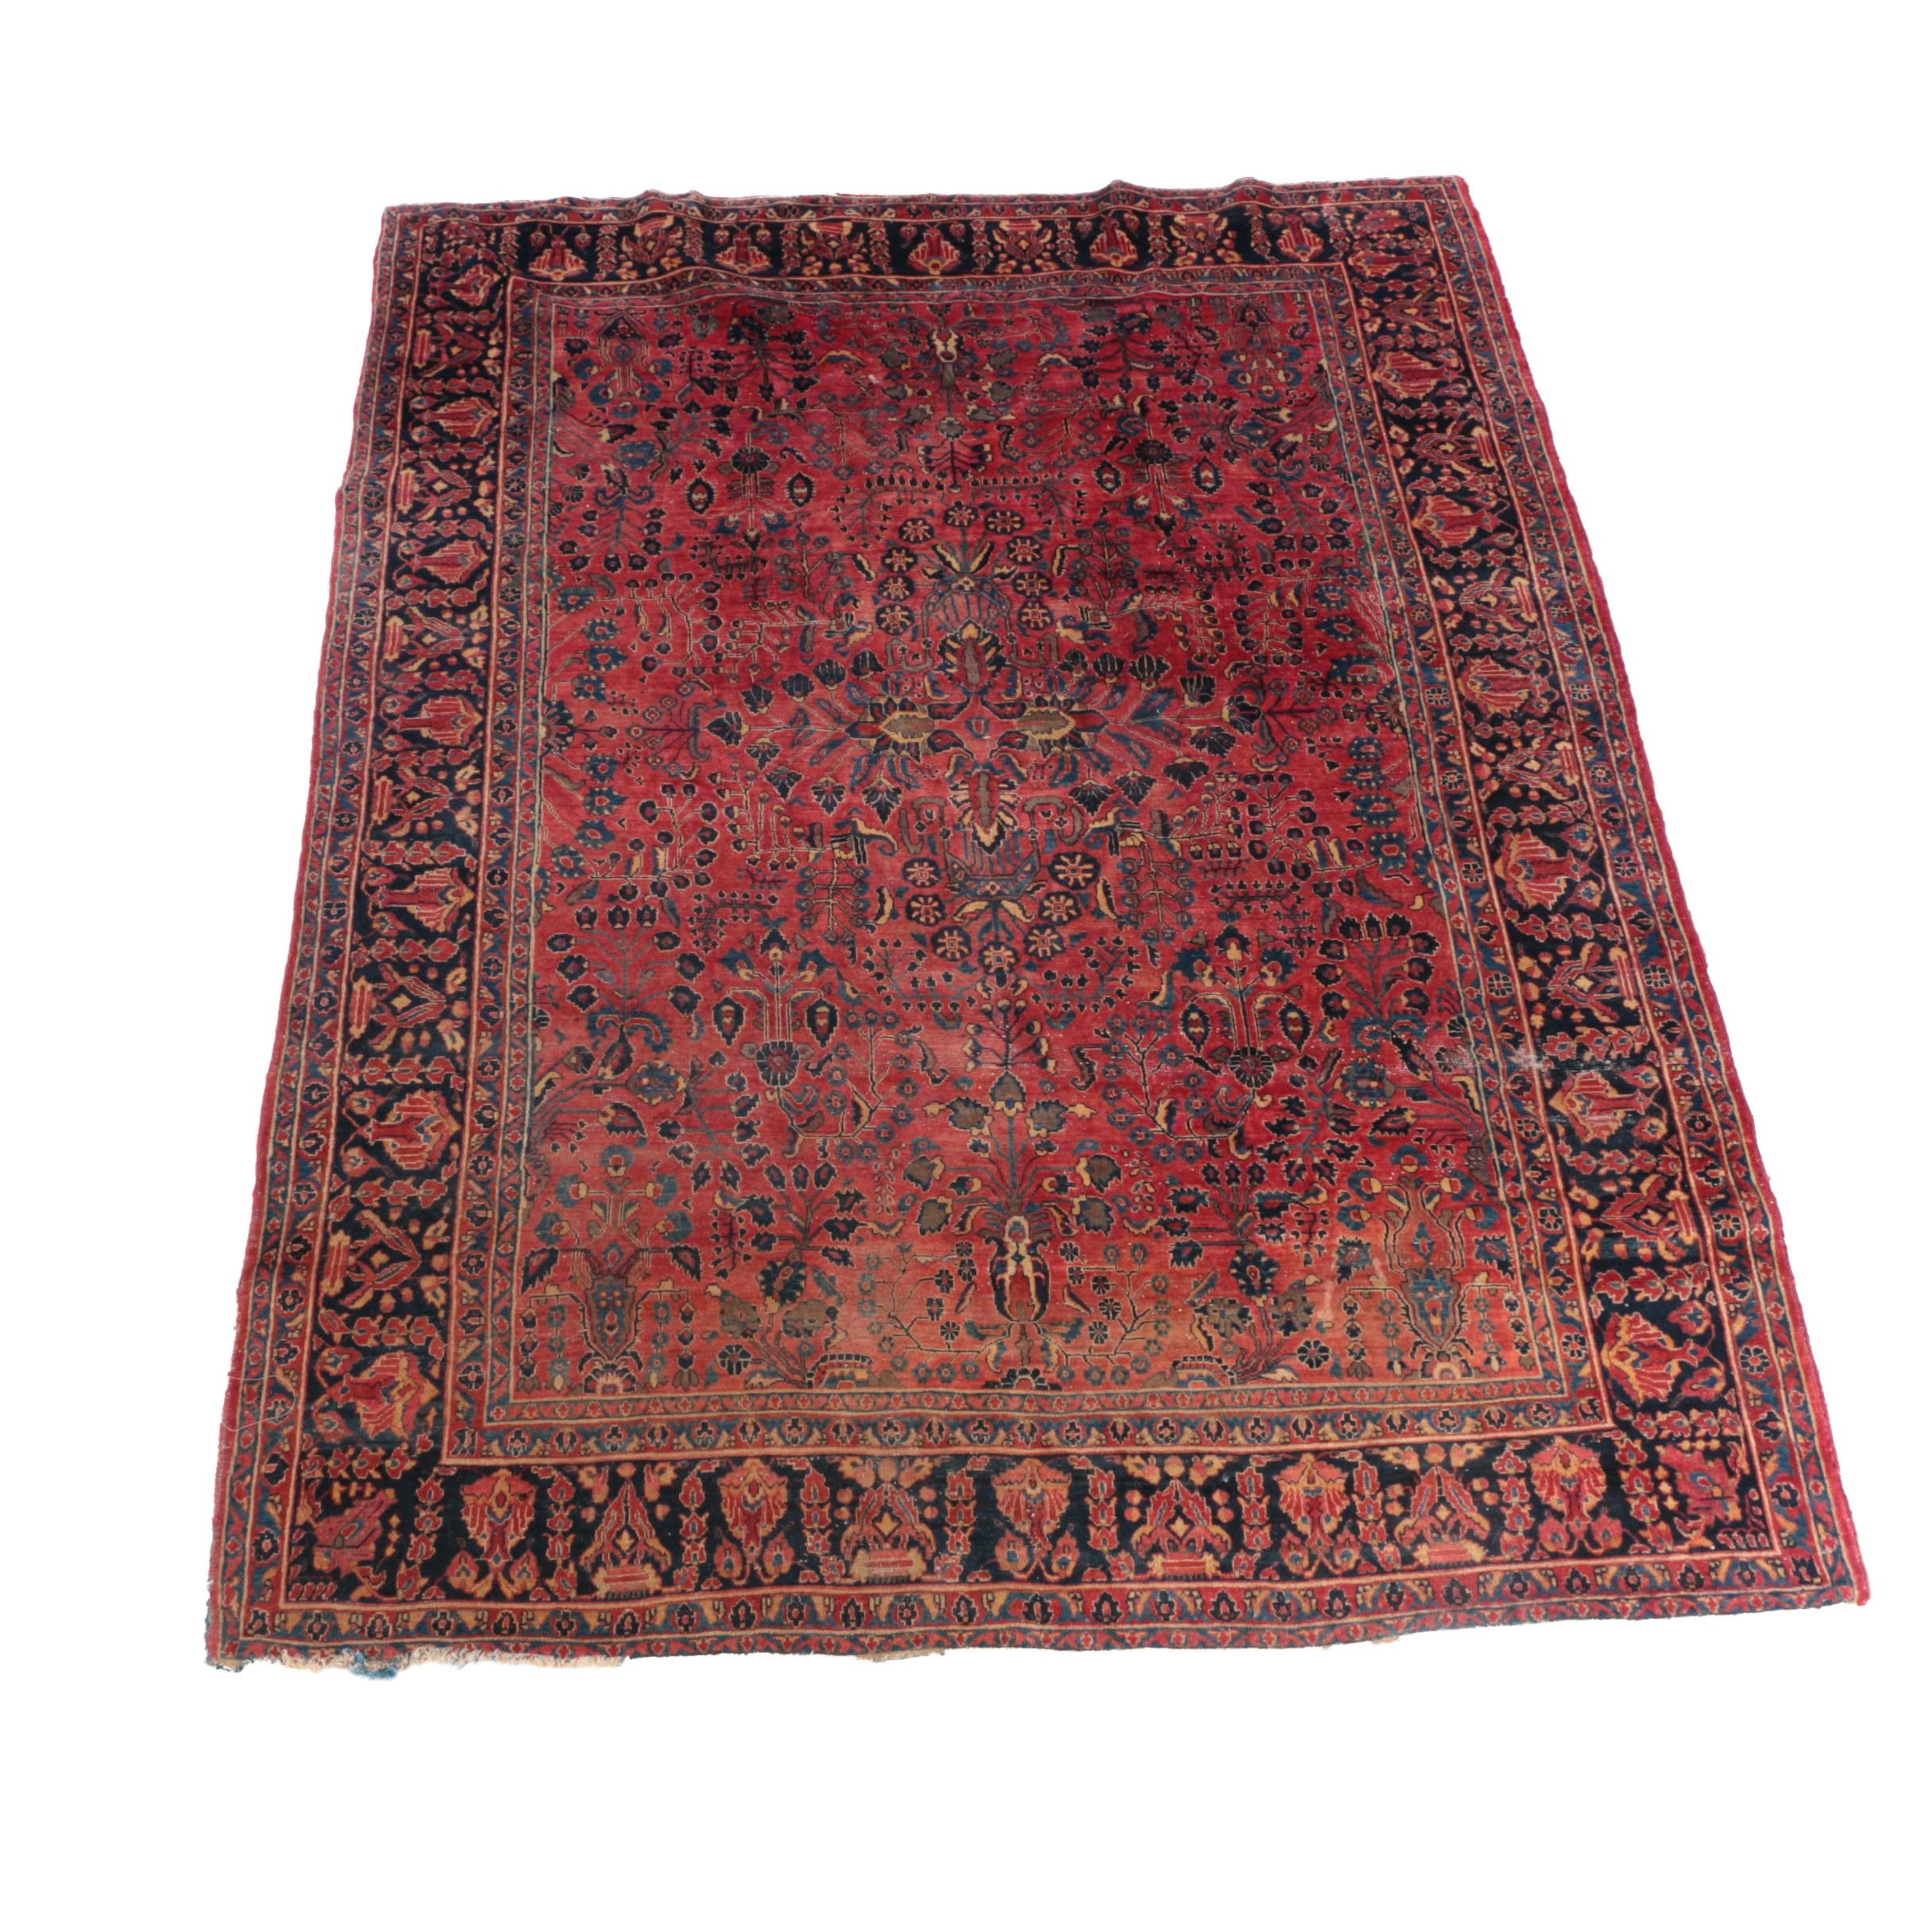 Large Antique Hand-Knotted Persian Sarouk Area Rug